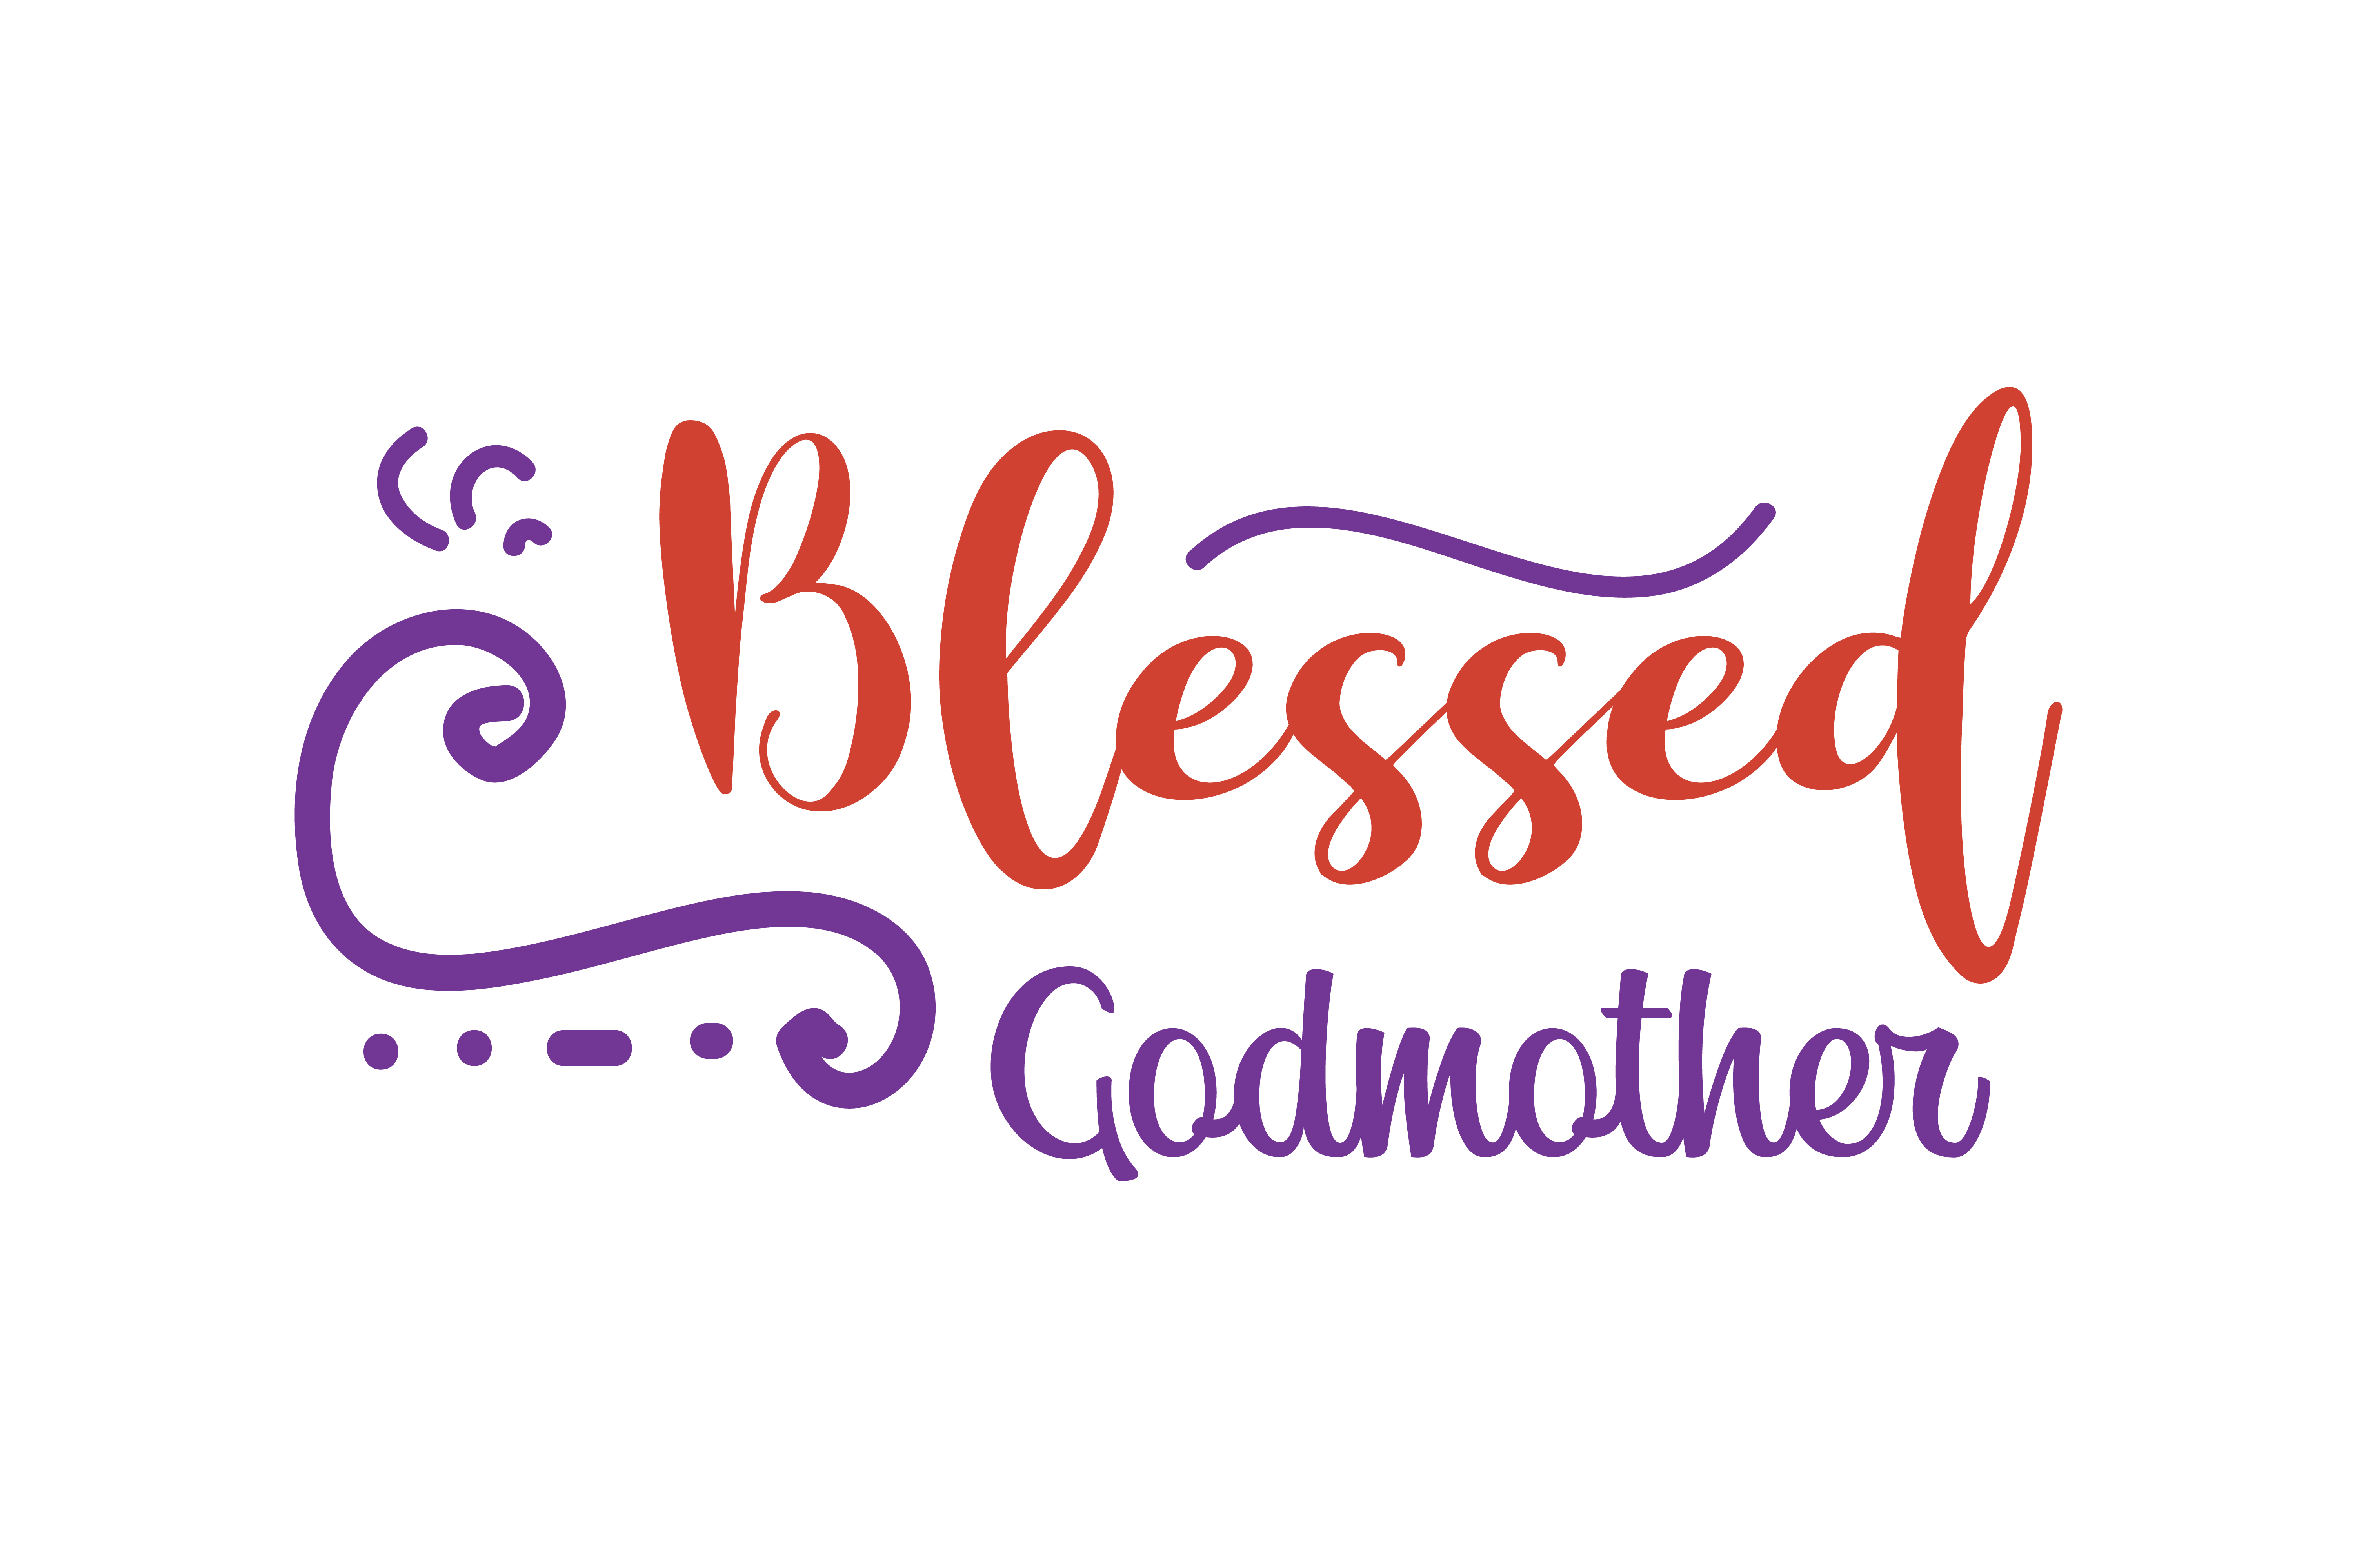 Blessed Godmother Quote Svg Cut Graphic By Thelucky Creative